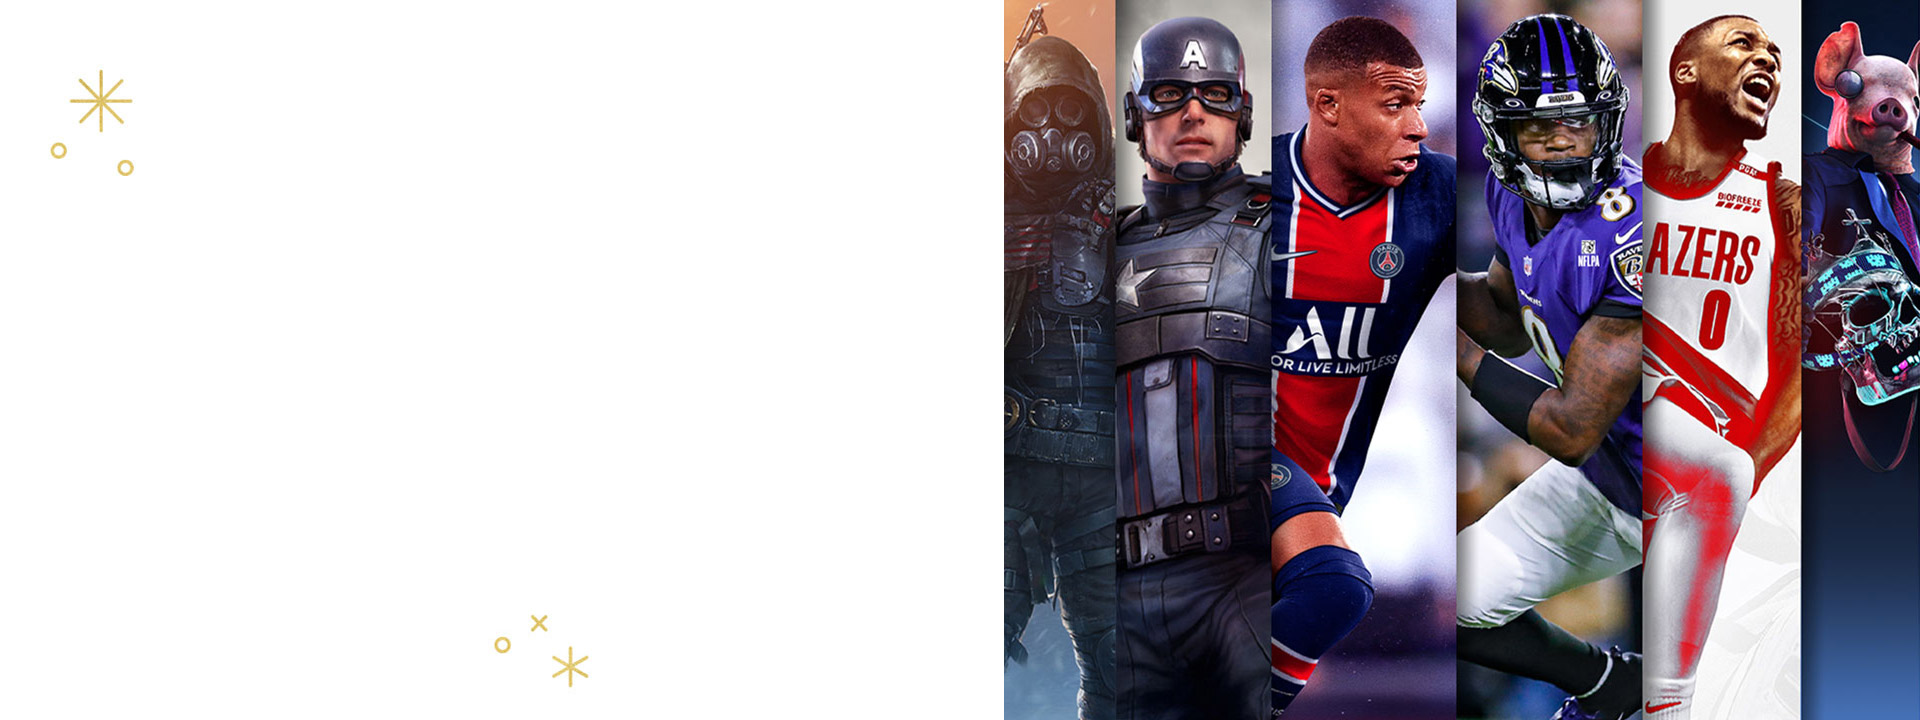 Game characters from Wasteland 3, Marvel's Avengers, FIFA 21, Madden NFL 21, NBA 2K21 and Watch Dogs: Legion.